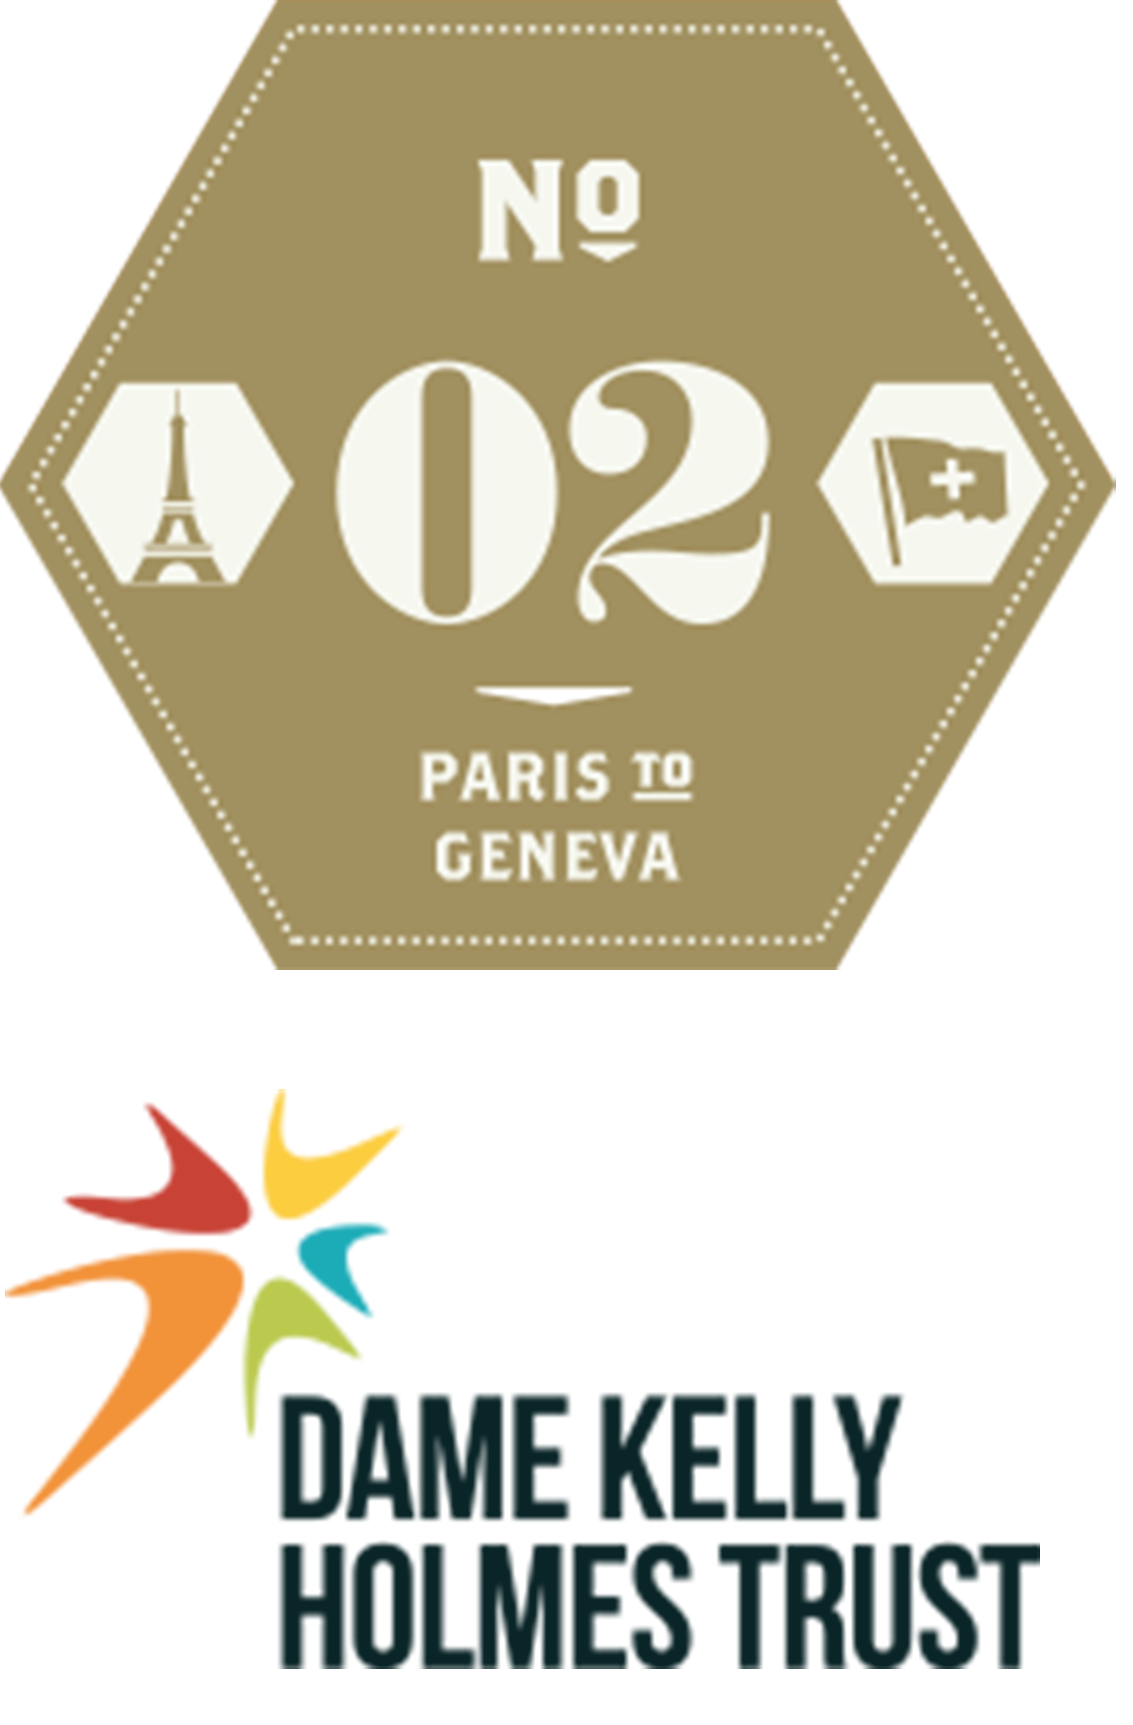 Paris to Geneva Cycling Challenge - Cycling Tours - Ride25